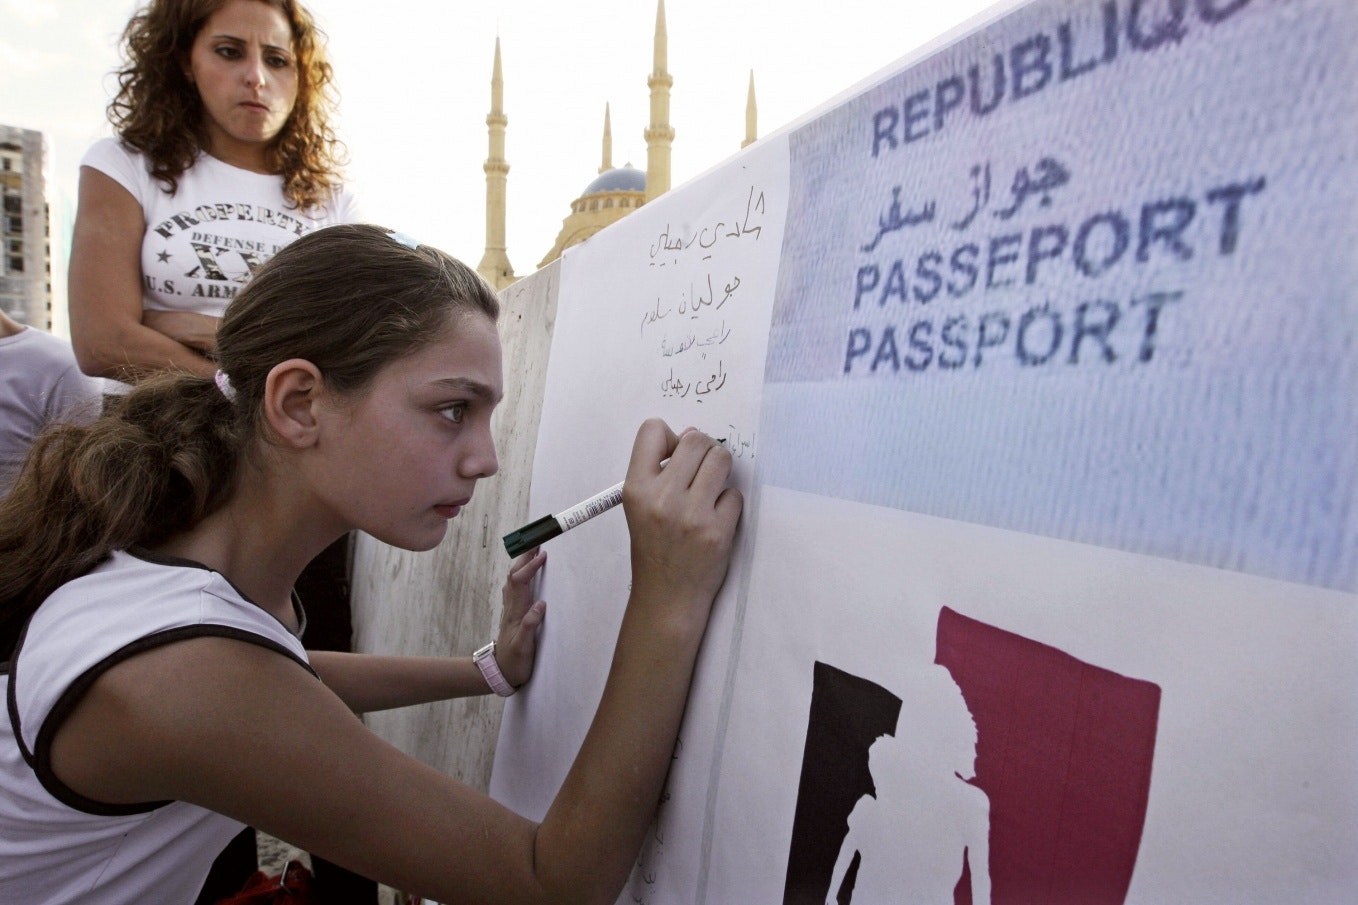 A young woman writing on a large sign in front of a mosque